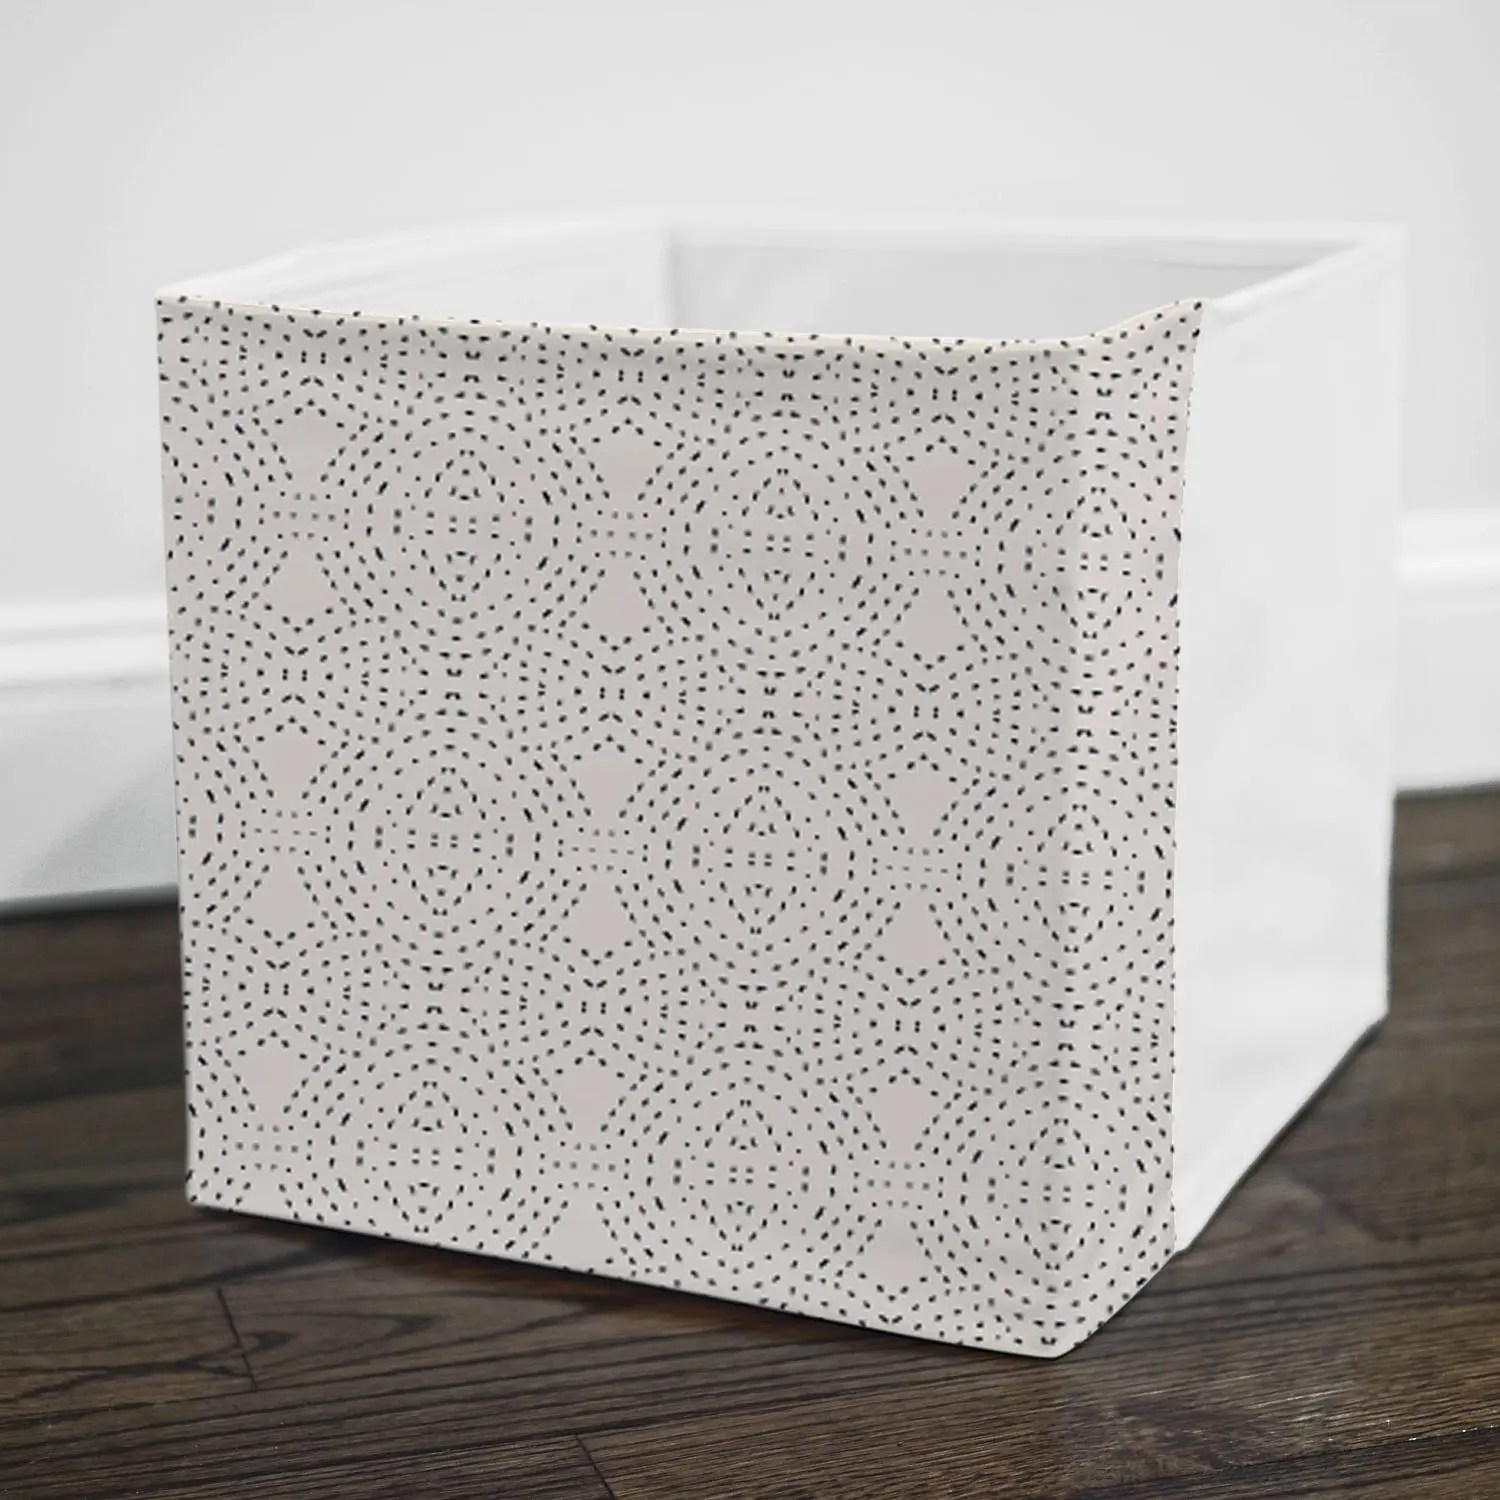 Ikea Gift Card Australia Seville Quilt Light Storage Bin Cover Fits Into Ikea